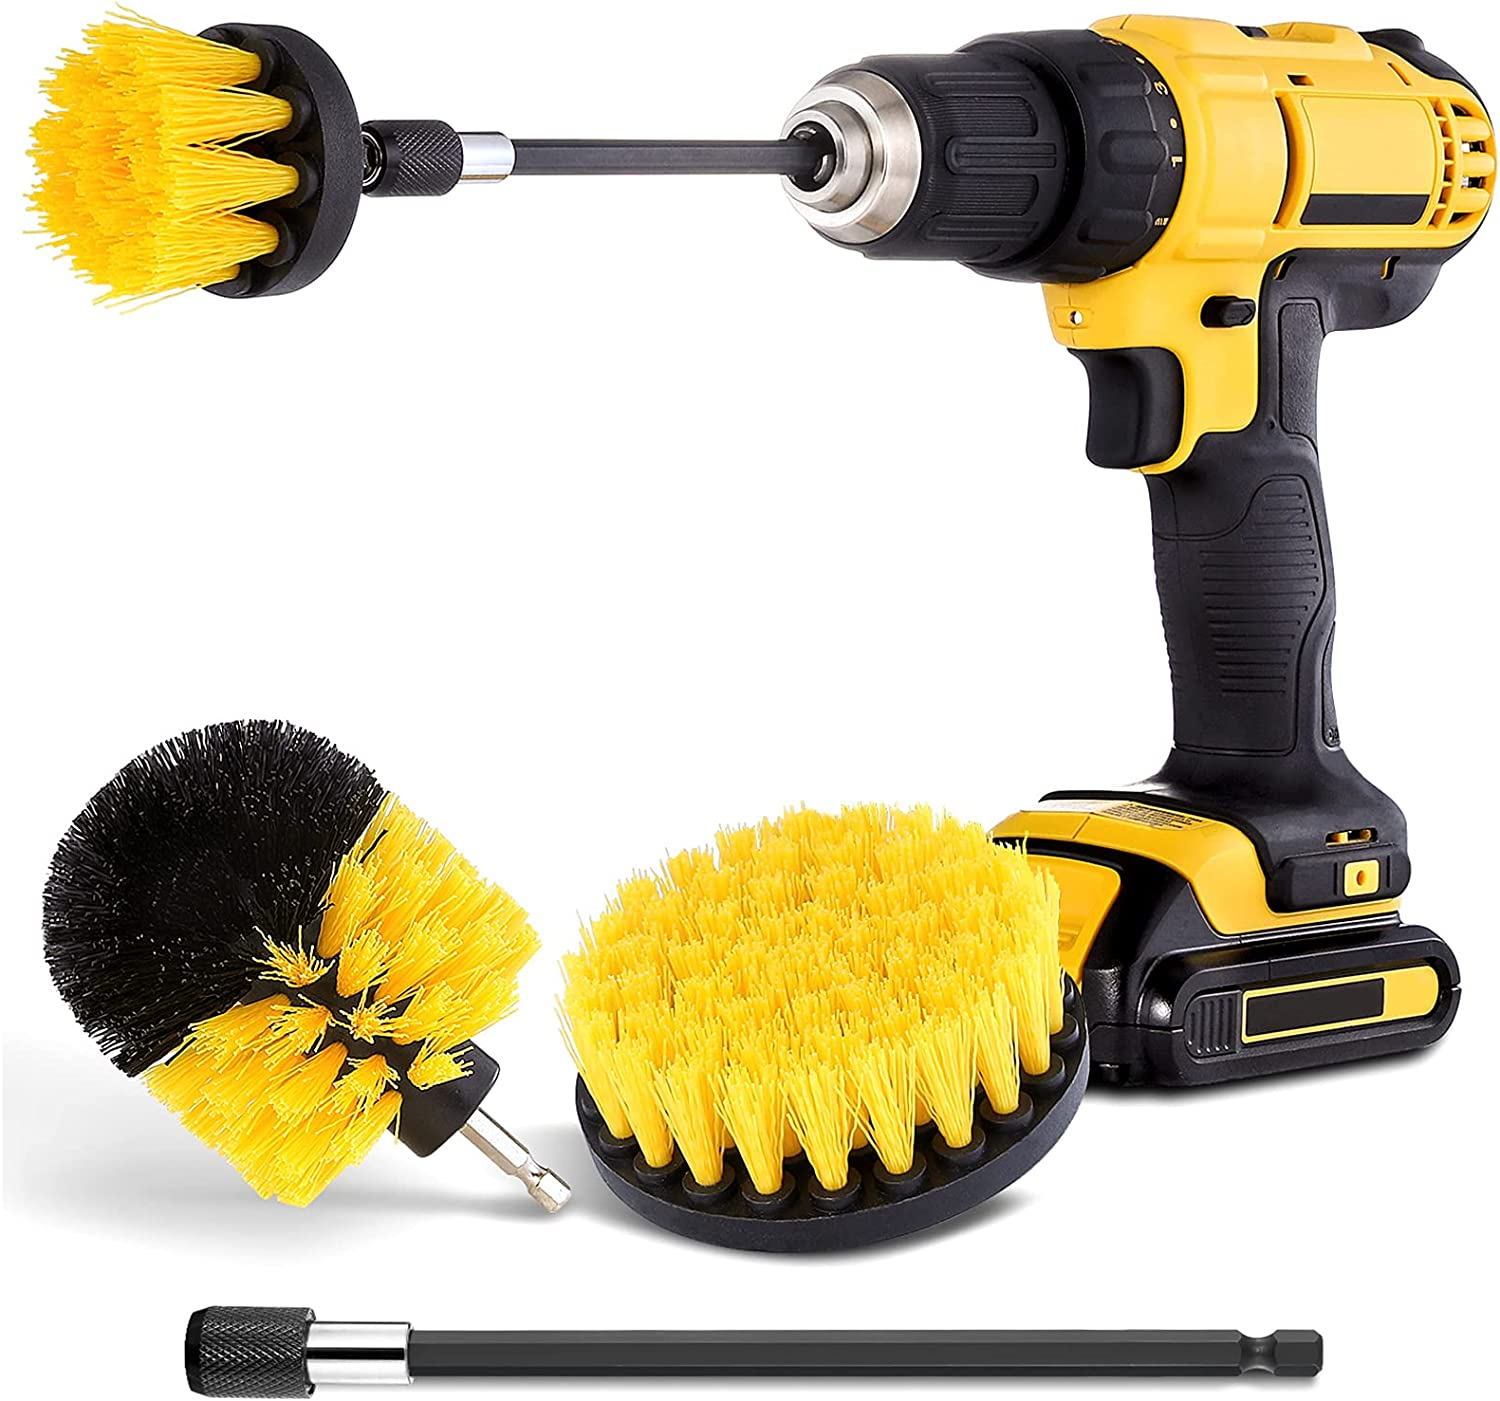 Drill Brush Attachment Set - Power Scrubber Brush Cleaning Kit - All Purpose Drill Brush with Extend Attachment for Bathroom Surfaces, Grout, Floor, Tub, Shower, Tile, Kitchen and Car : Health & Household